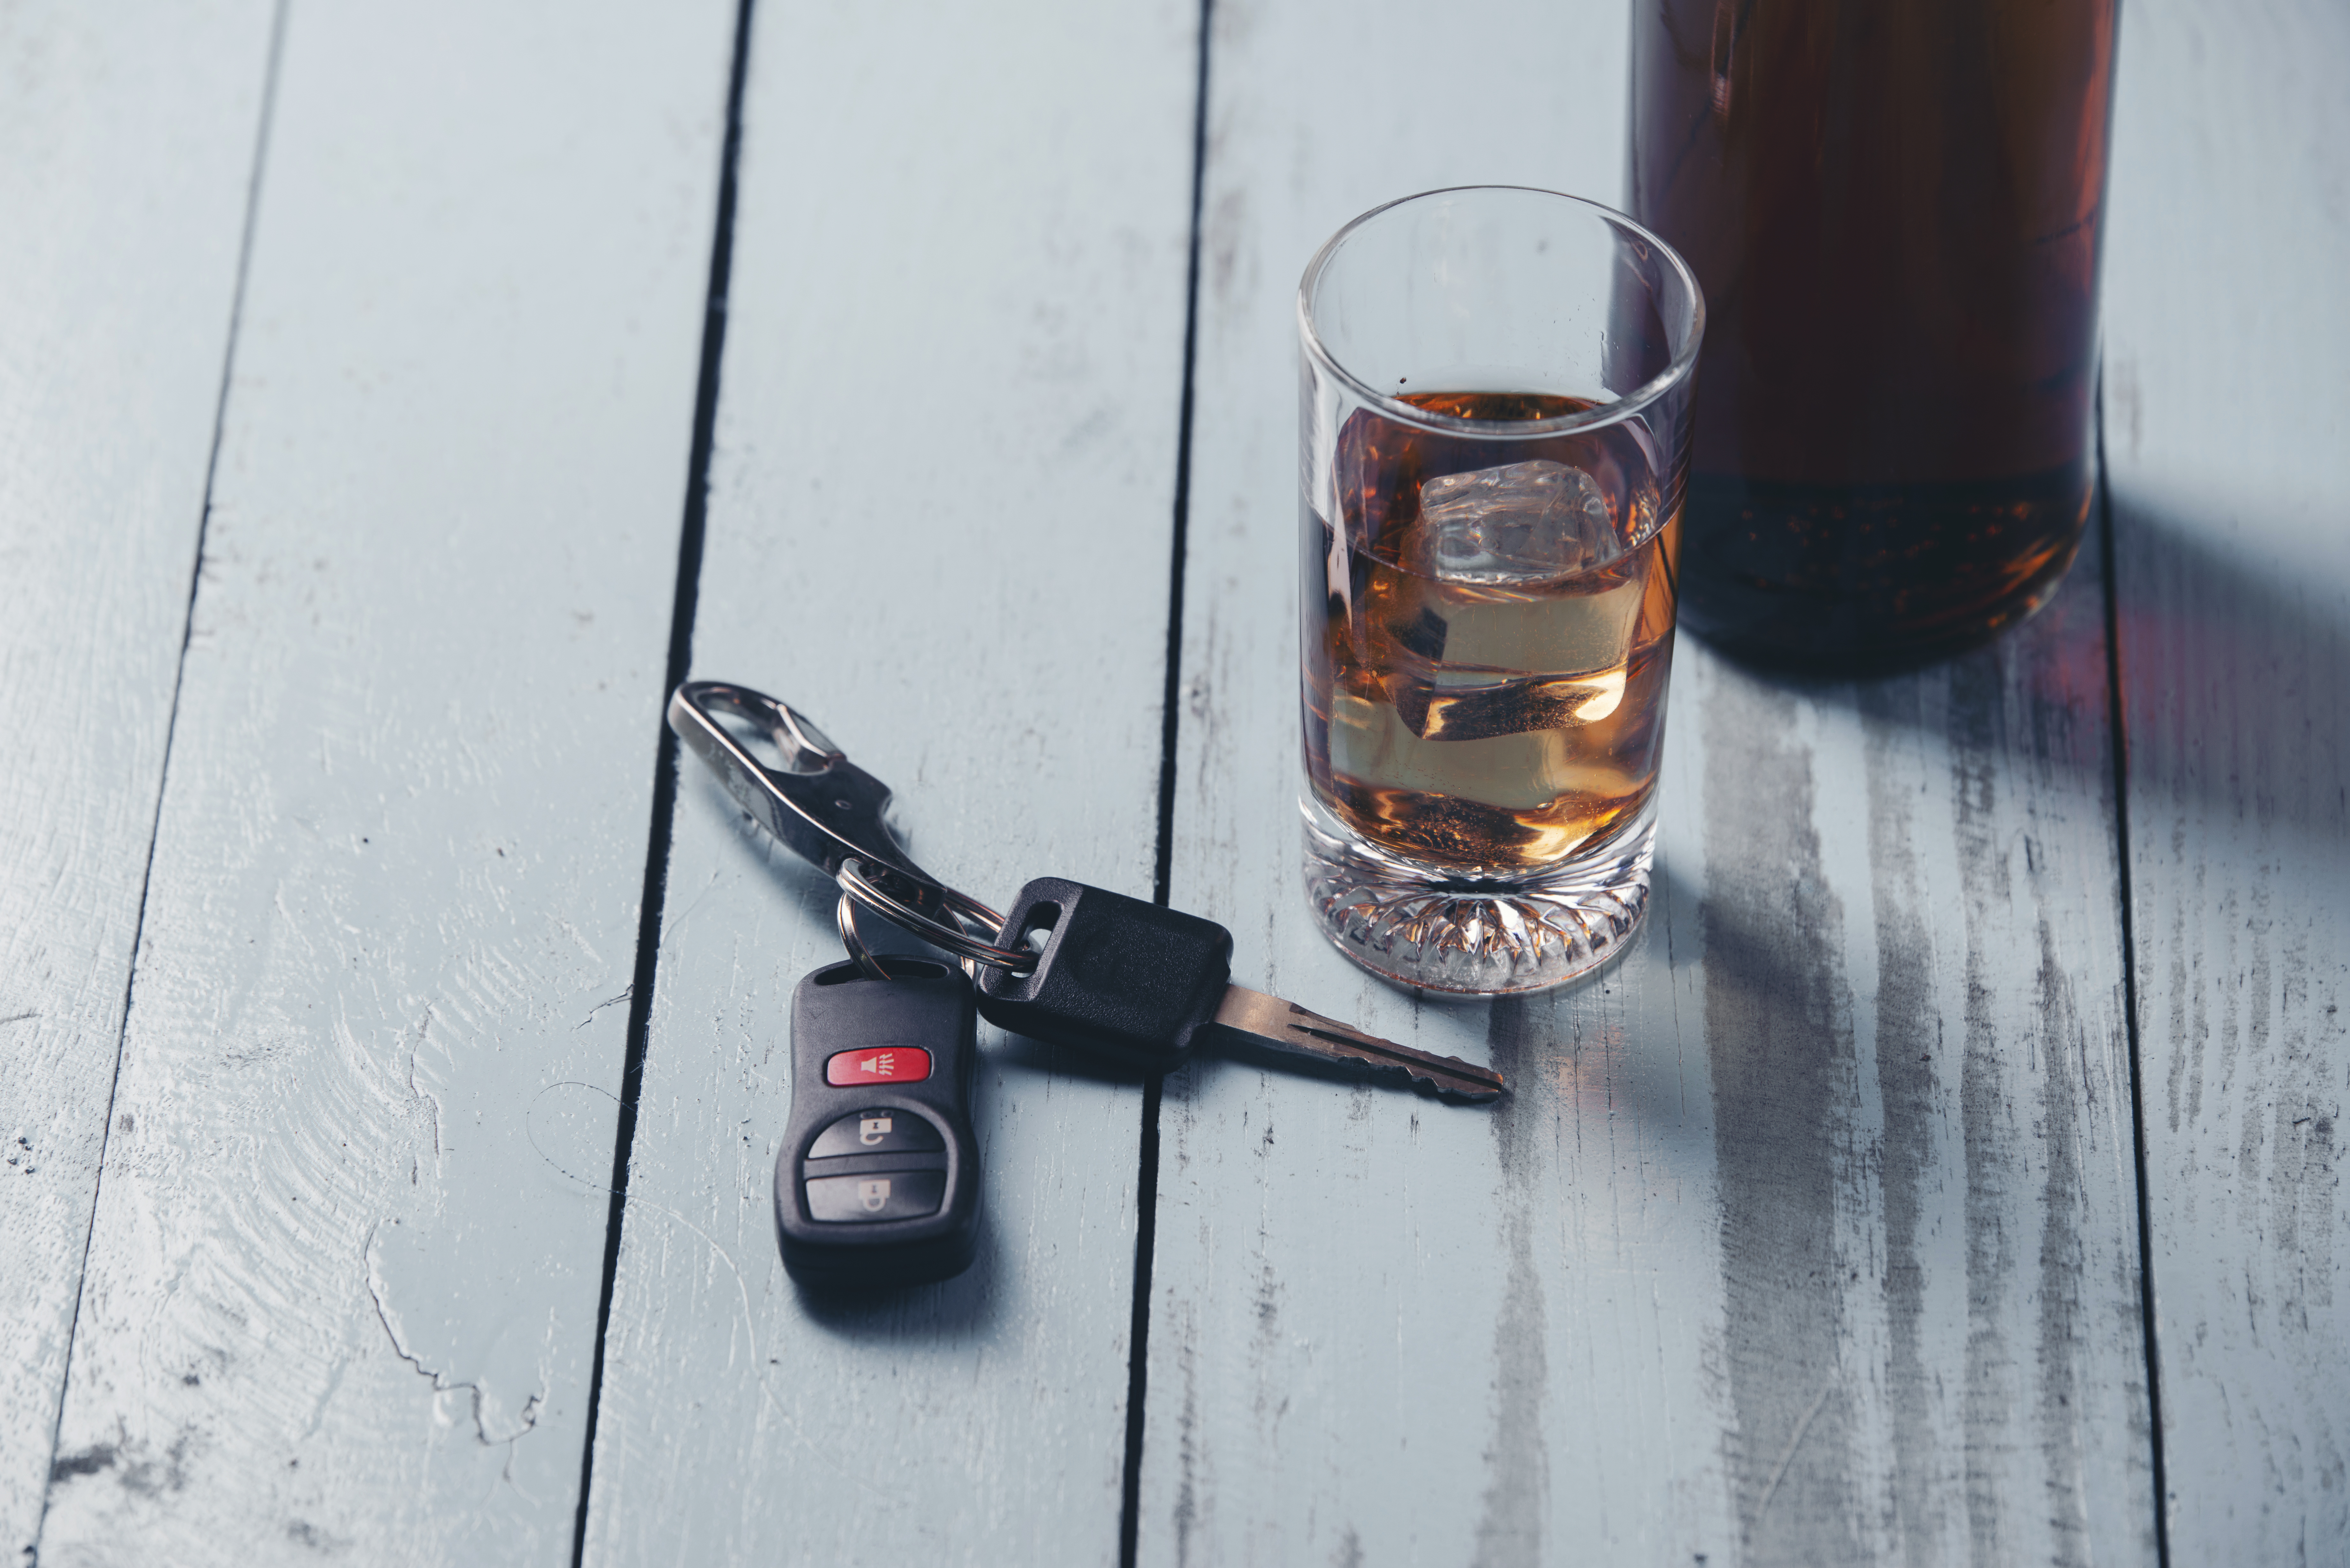 Glass, a bottle of alcohol and a car key